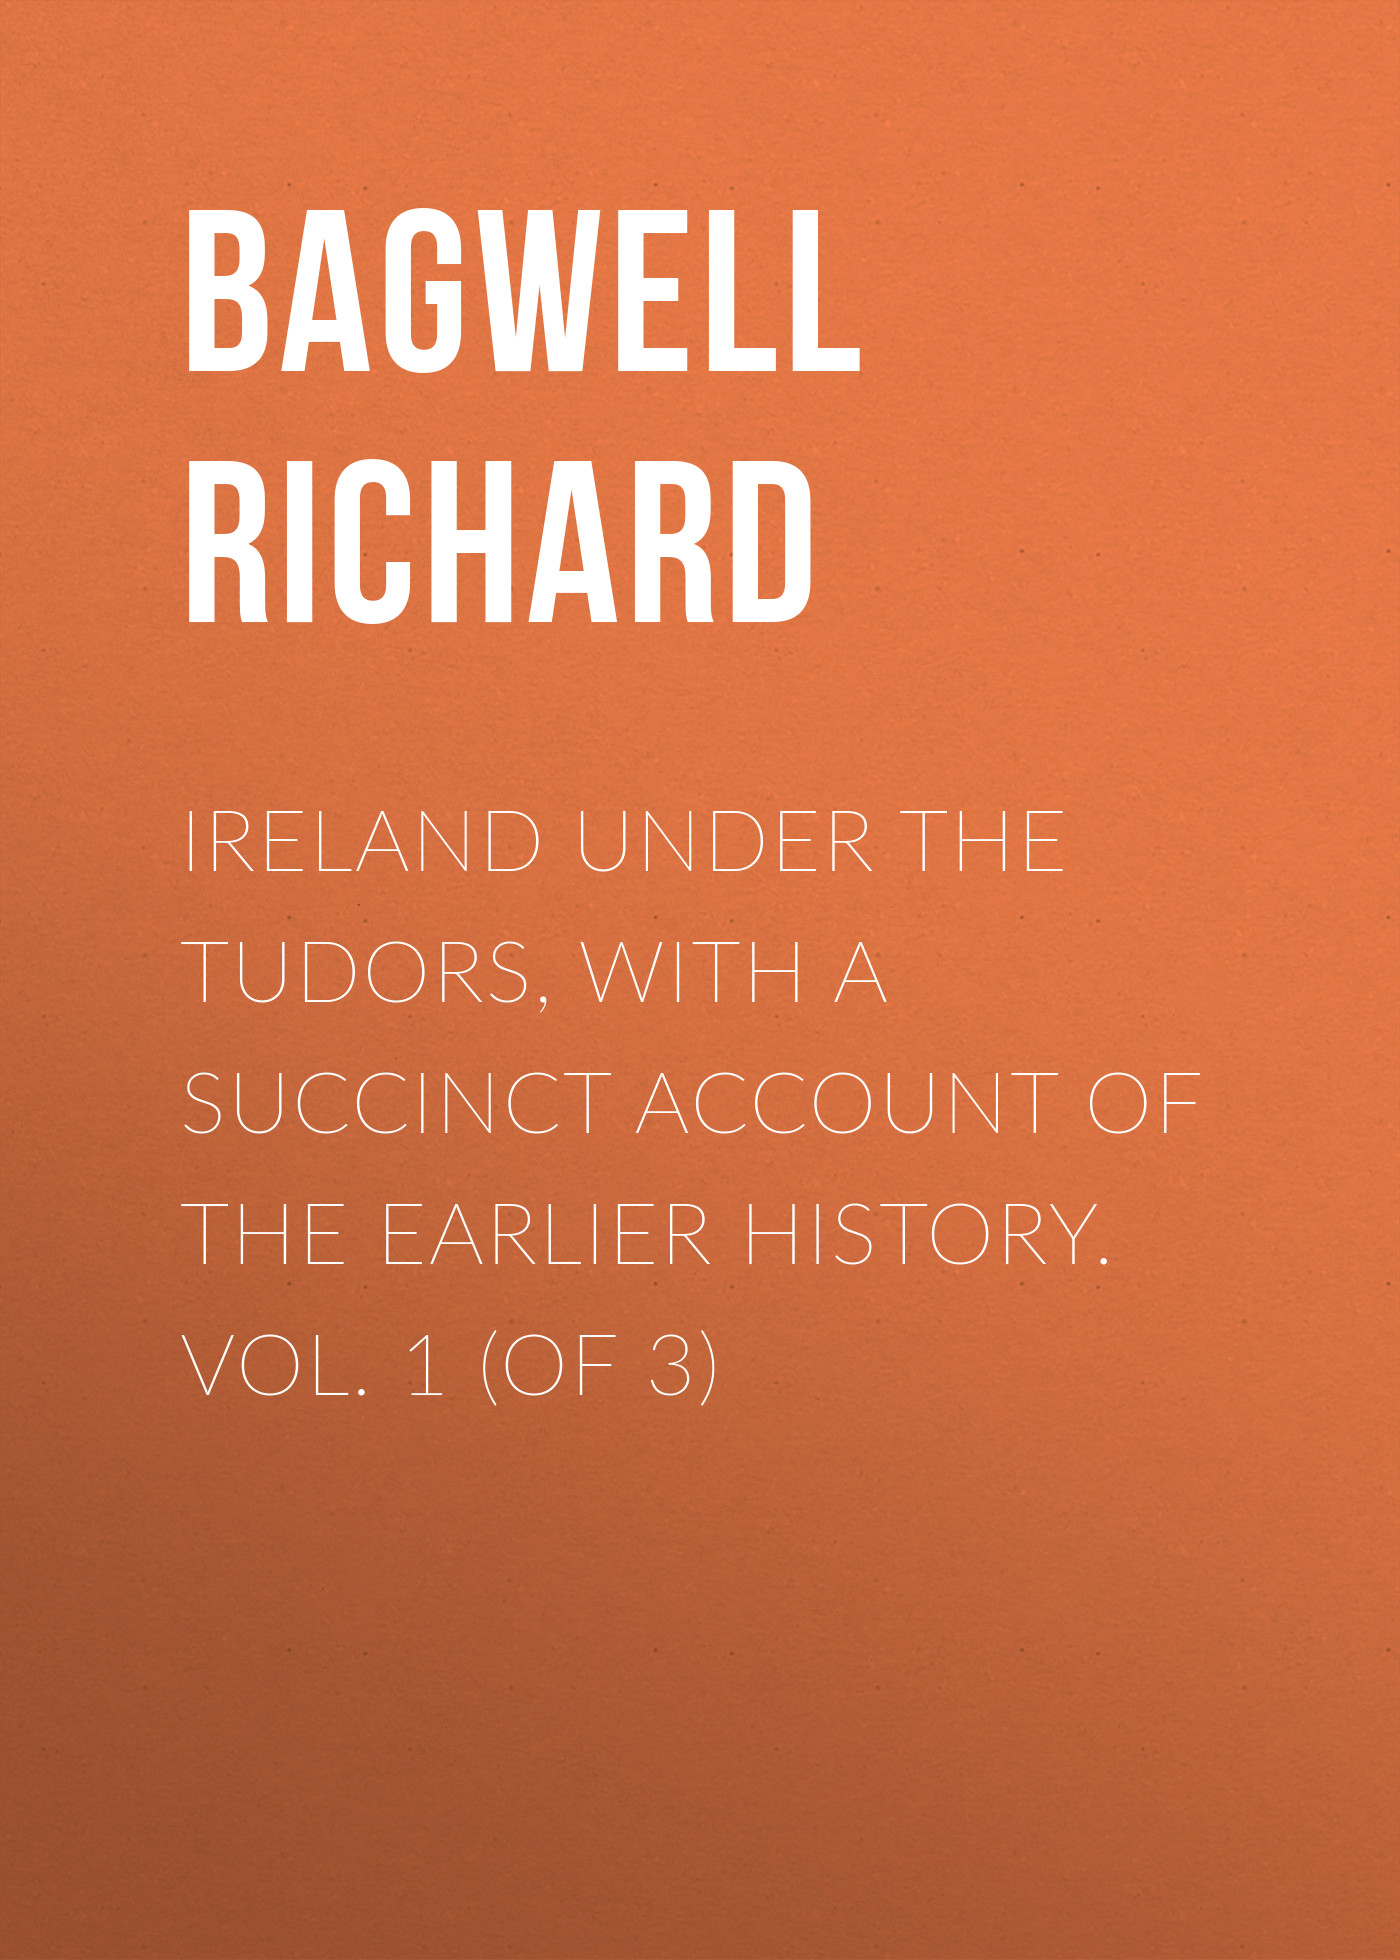 Bagwell Richard Ireland under the Tudors, with a Succinct Account of the Earlier History. Vol. 1 (of 3)